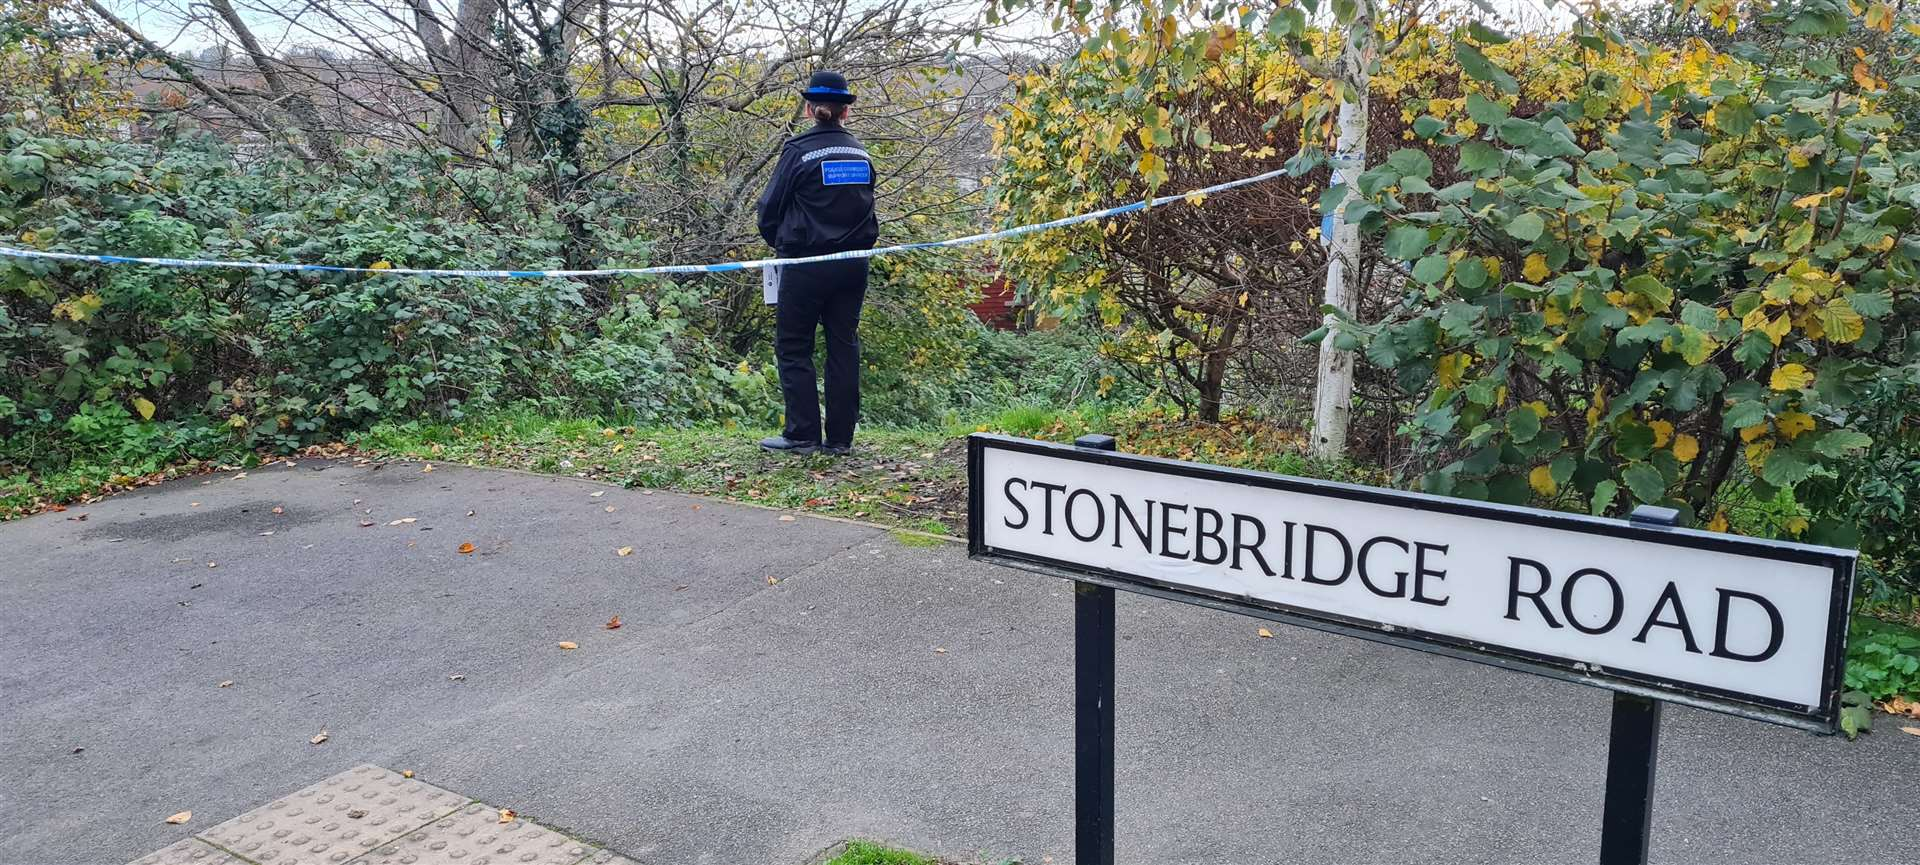 Emergency services have been called to Stonebridge Road